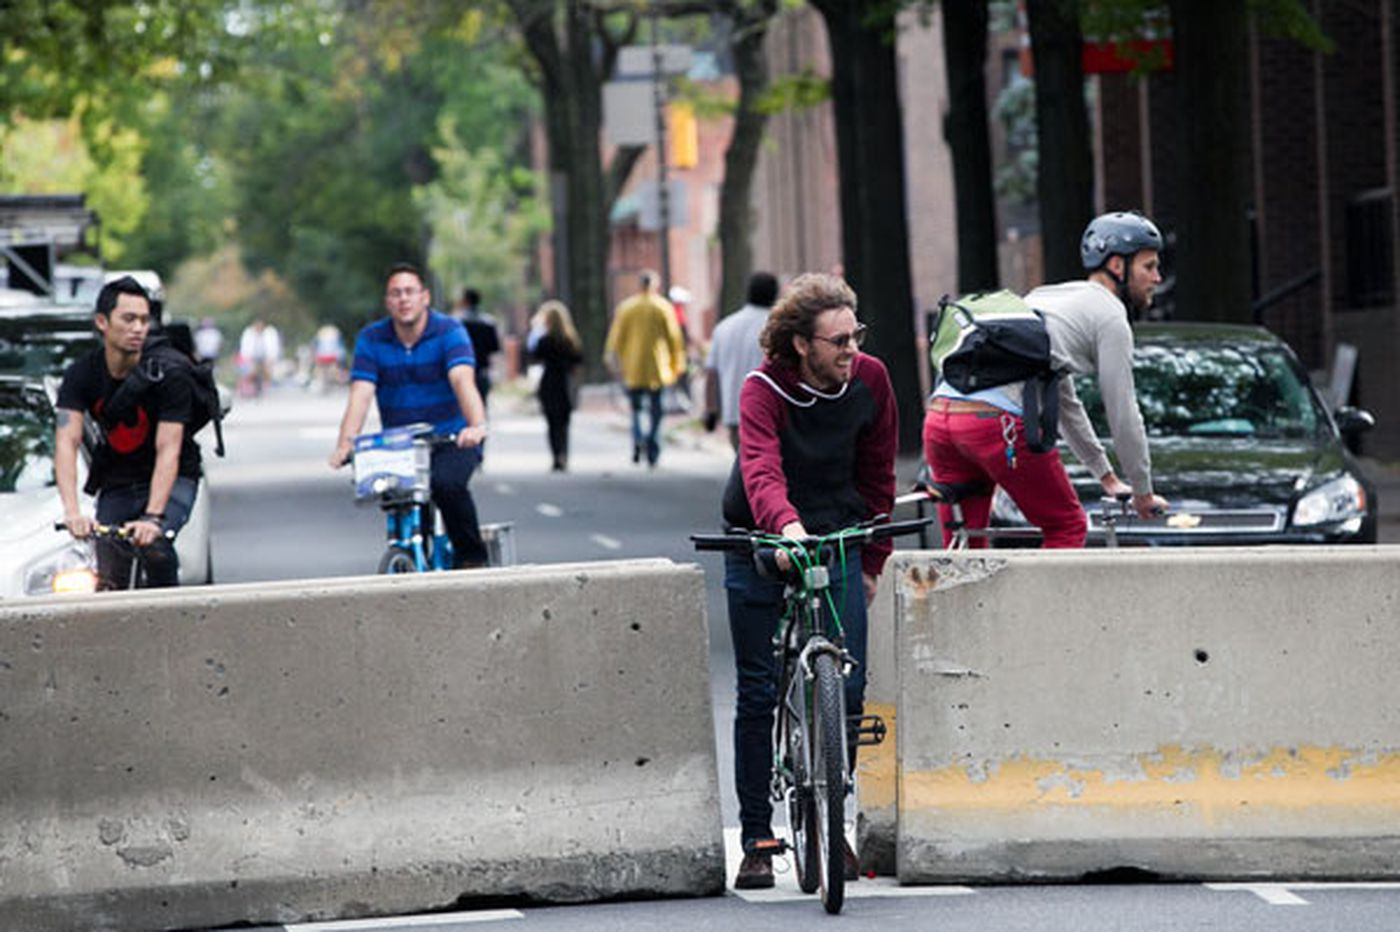 Group petitioning Kenney to enjoy car-free streets again next summer